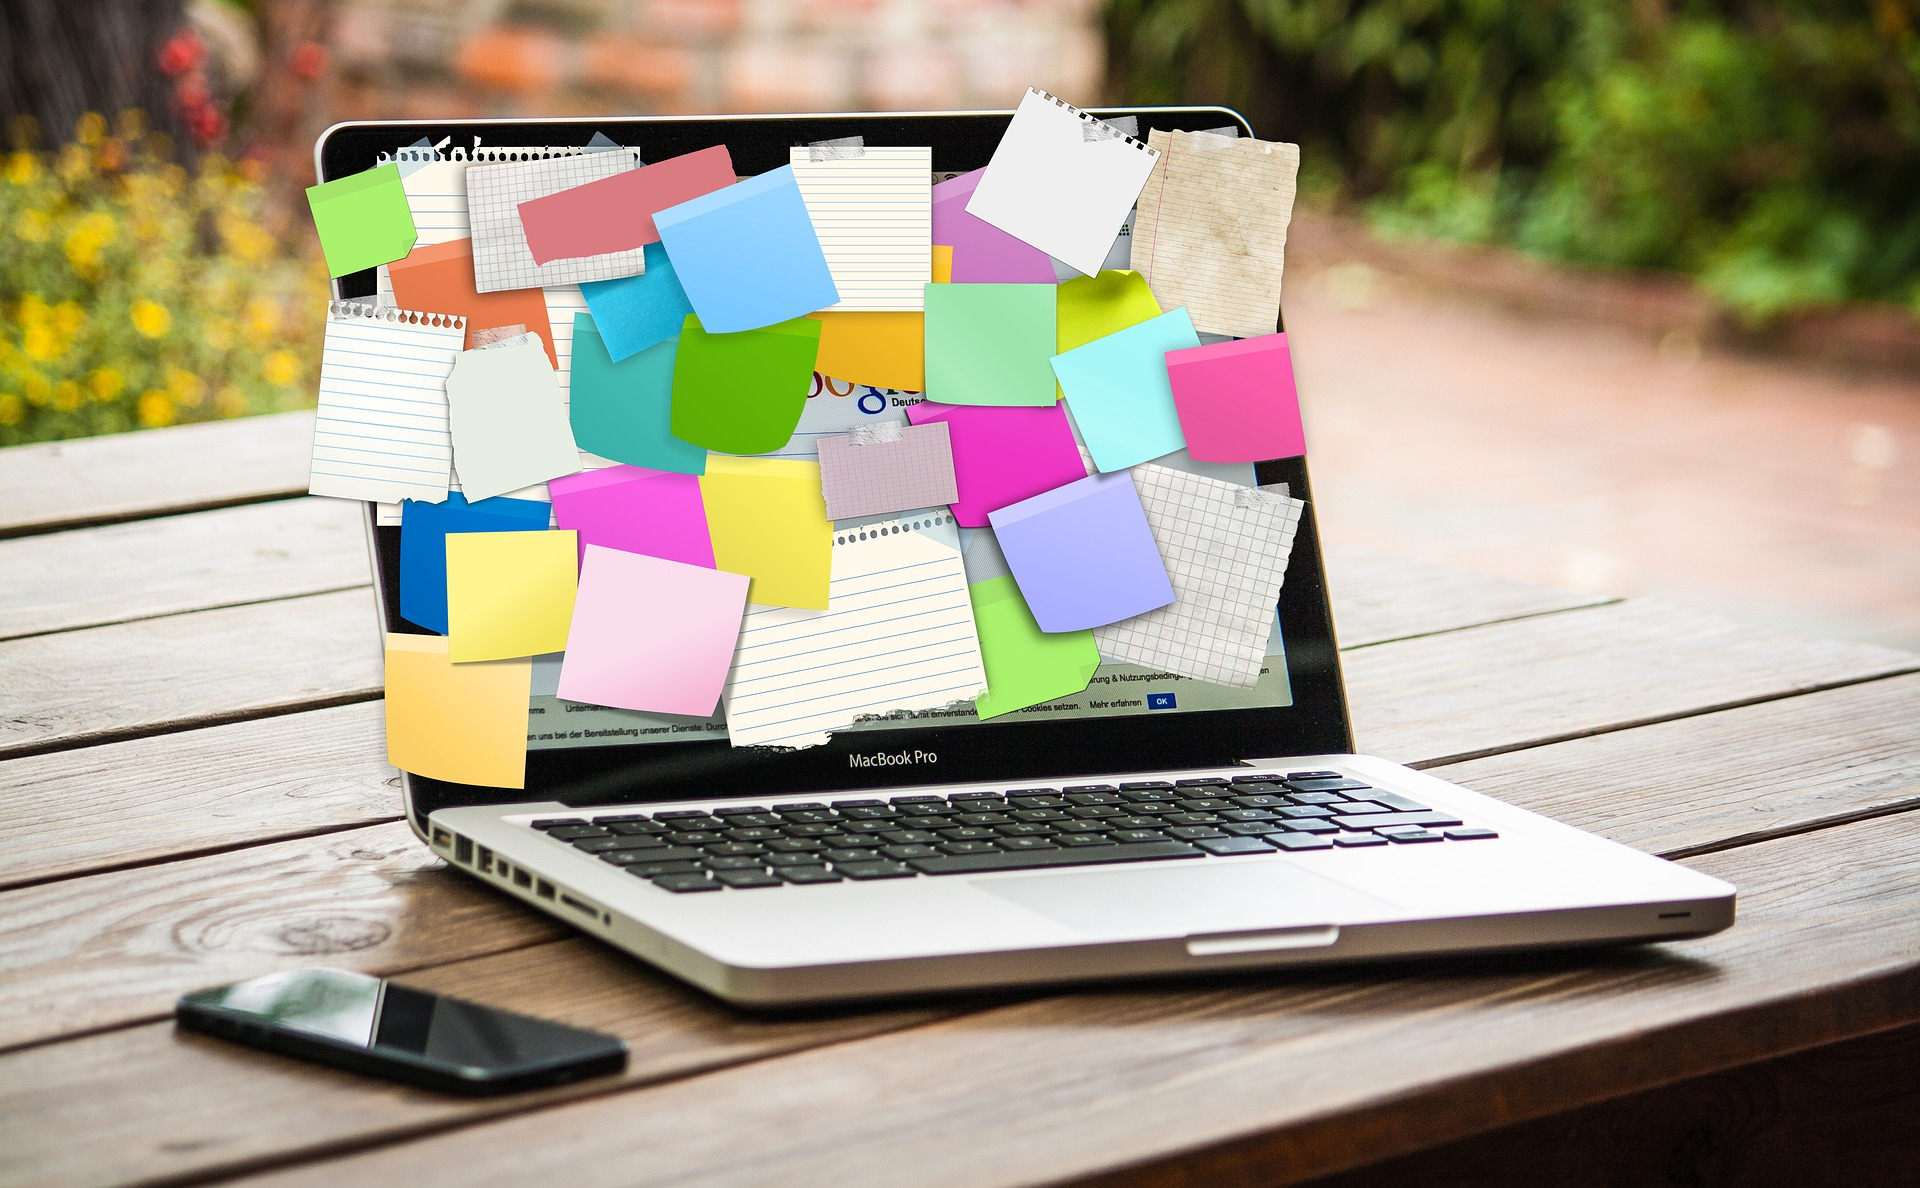 Laptop computer covered in post it notes. Image by Gerd Altmann from Pixabay